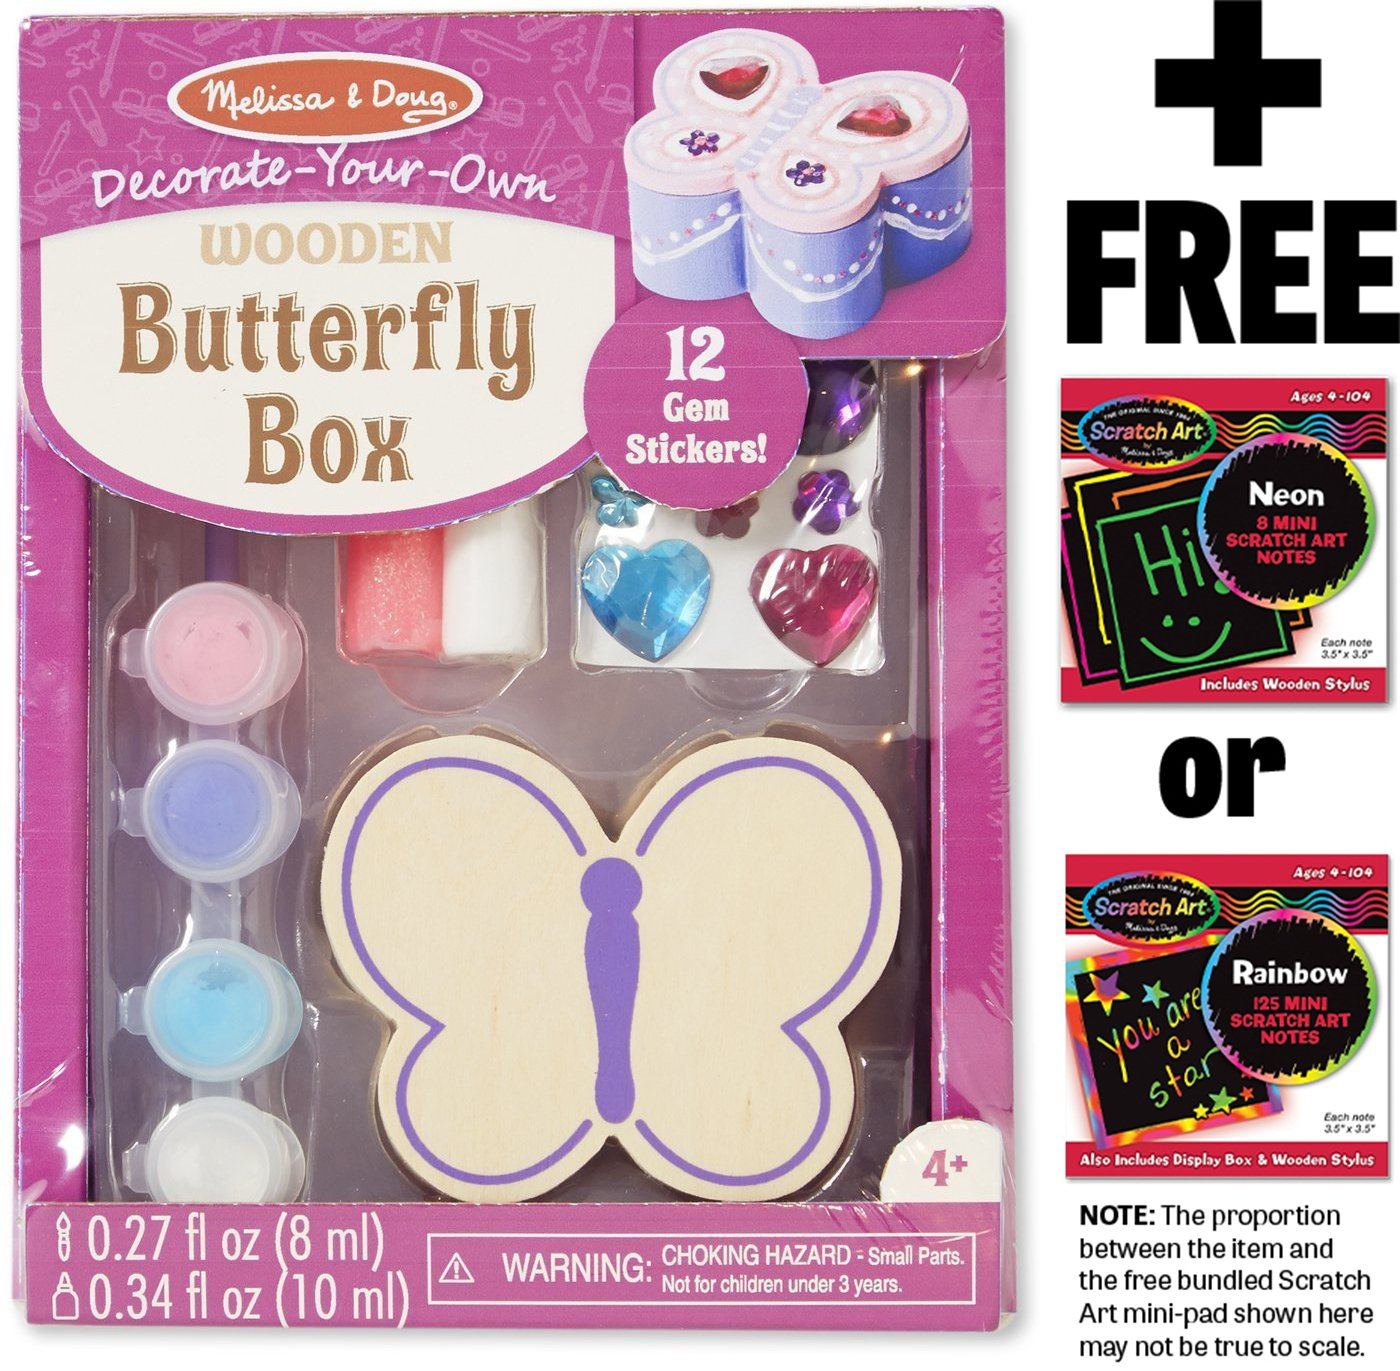 Wooden Butterfly Box Decorate-Your-Own Kit 88534 FREE Melissa /& Doug Scratch Art Mini-Pad Bundle